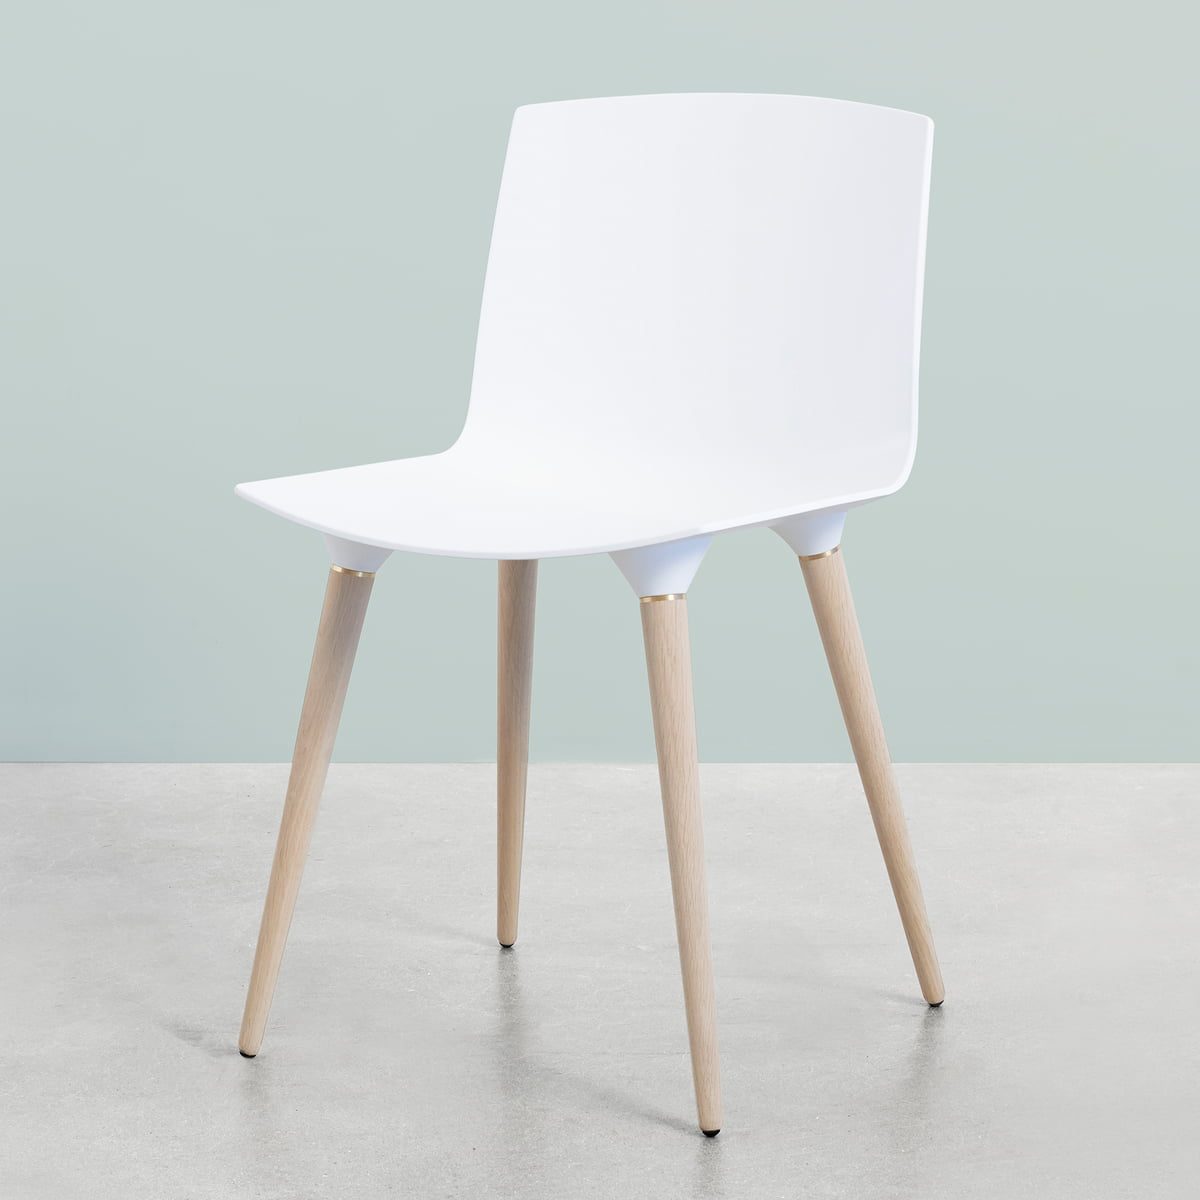 Chair Furniture Design: TAC Chair By Andersen Furniture